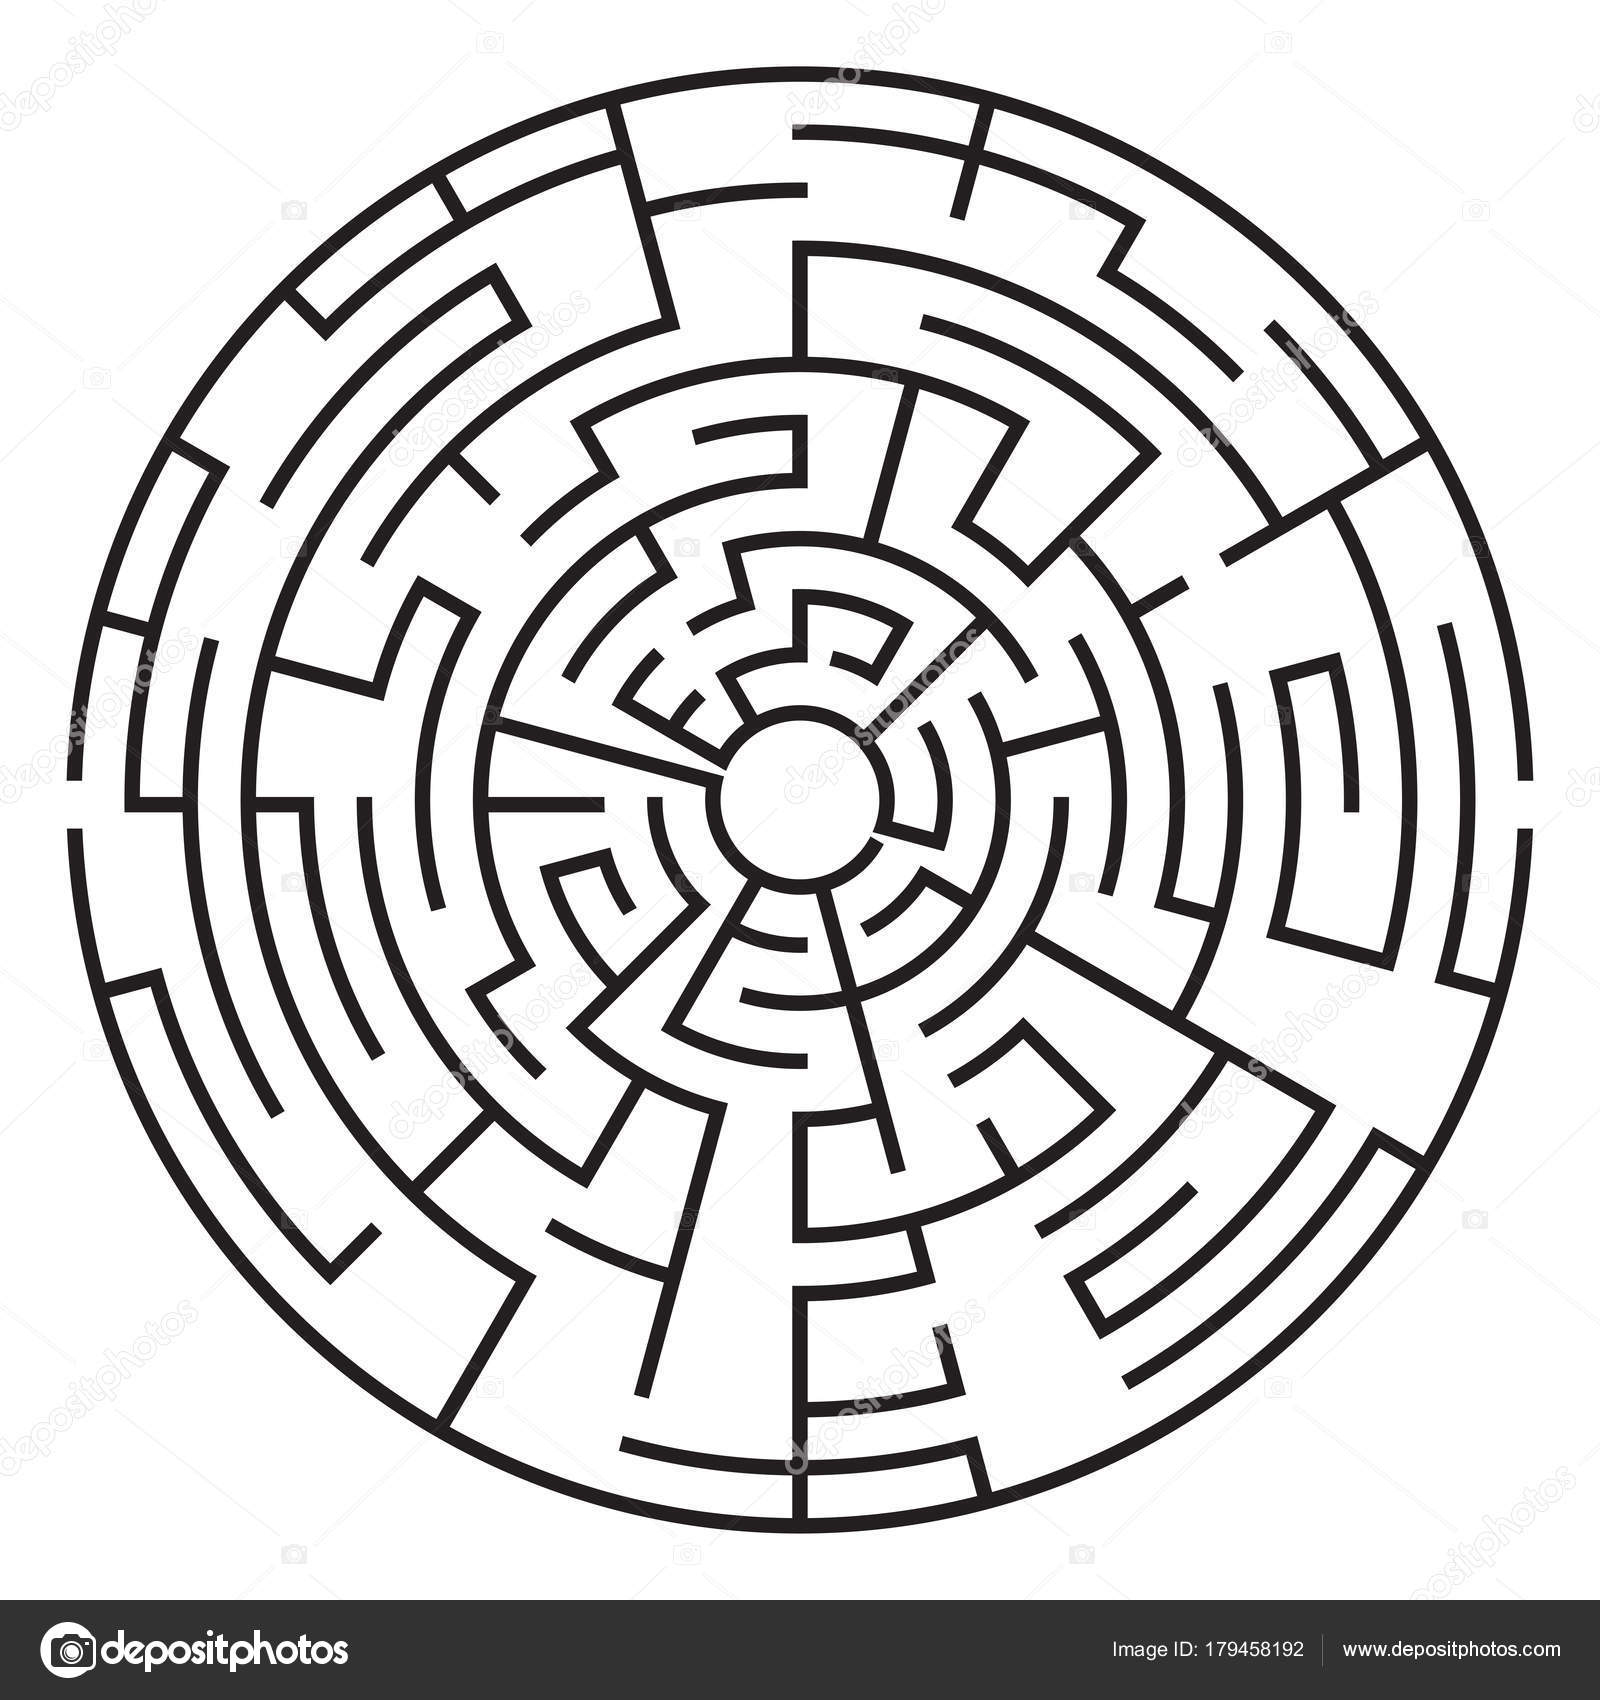 Circular maze isolated on white background  Medium complexity